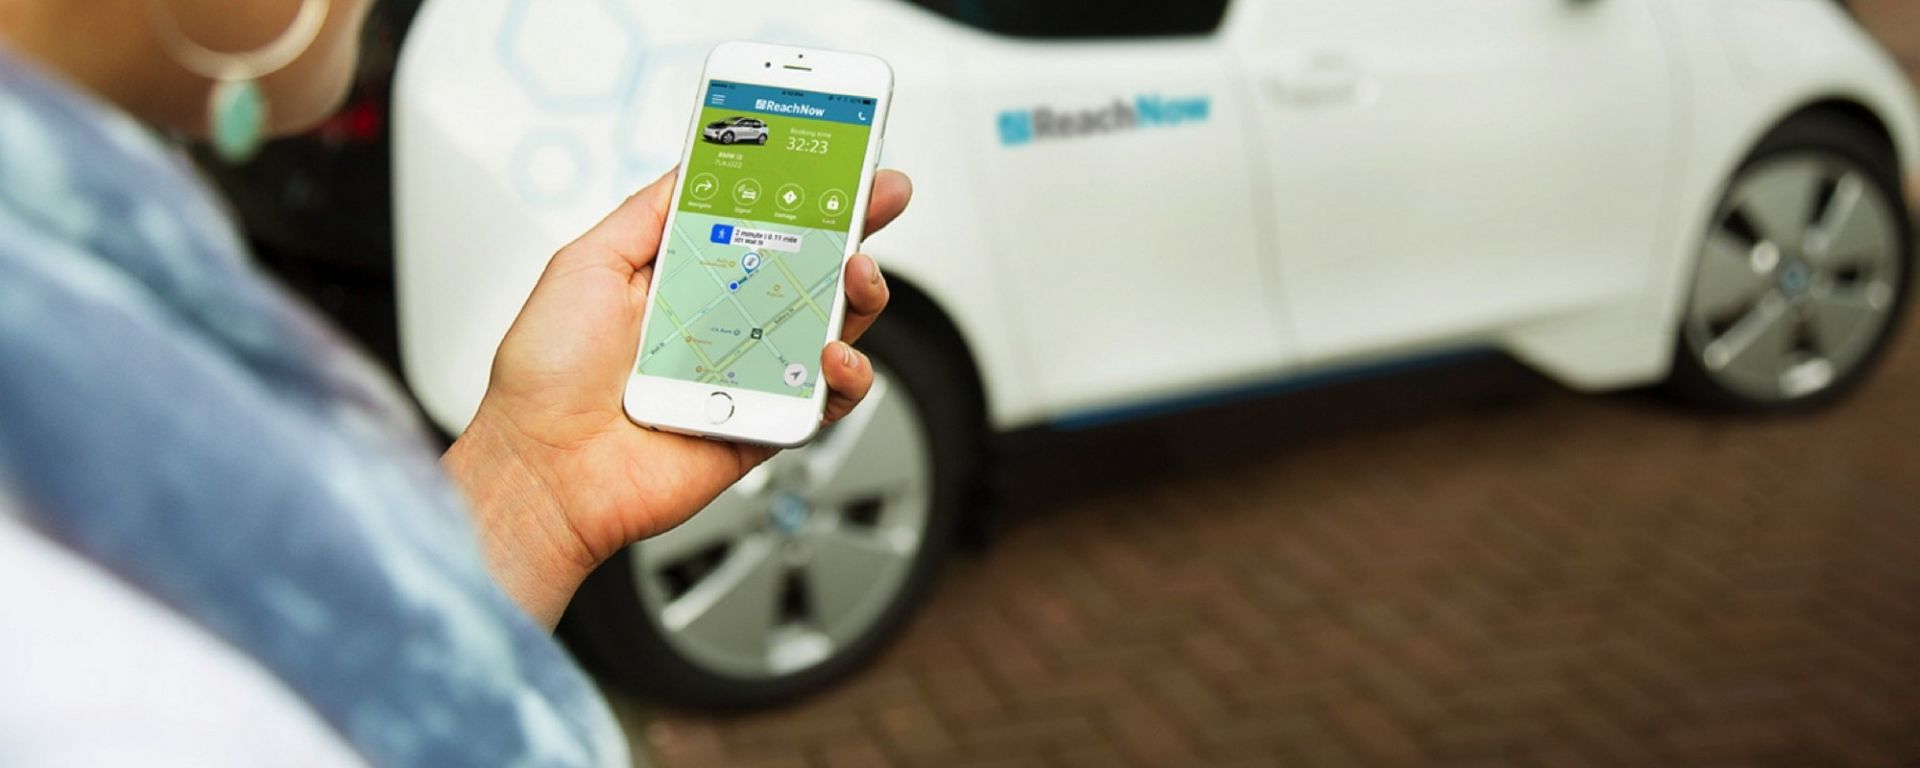 Auto di proprietà, col car sharing è in calo